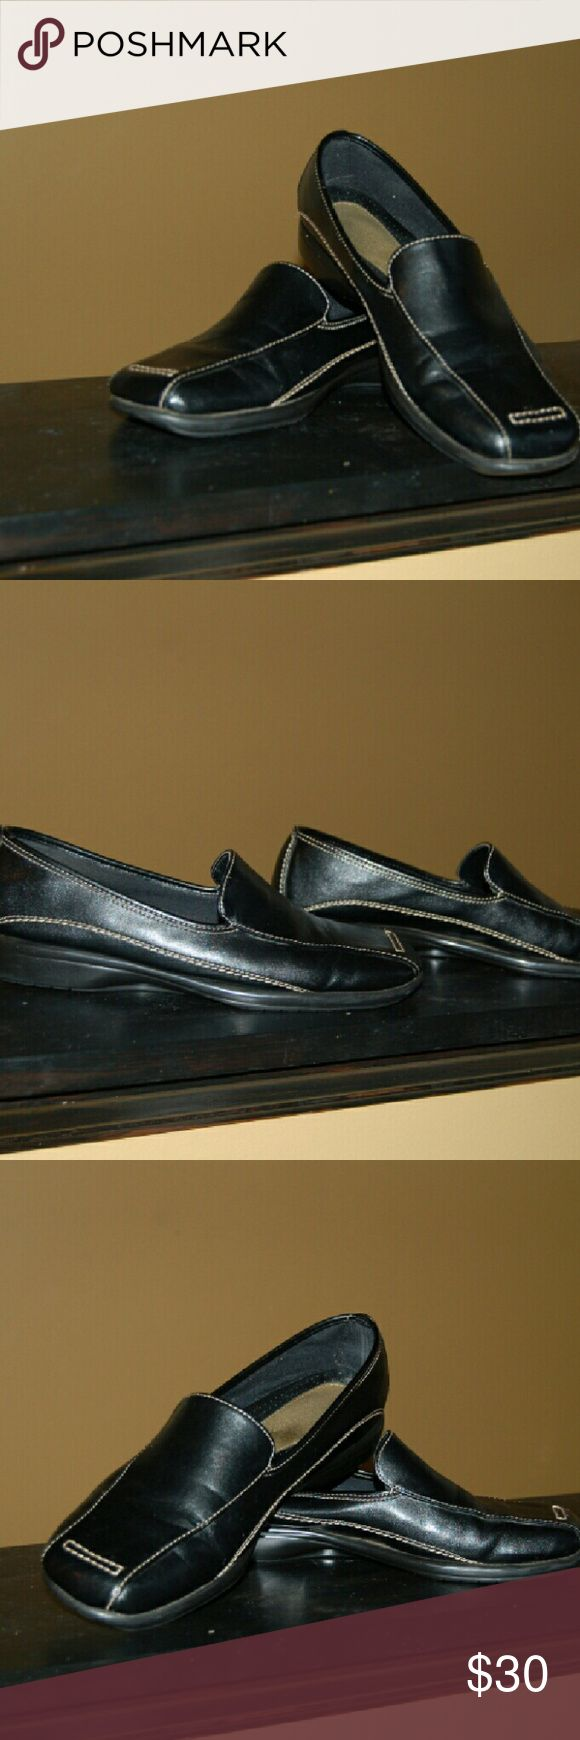 Black Leather Flats Great for walking and driving AEROSOLES Shoes Flats & Loafers